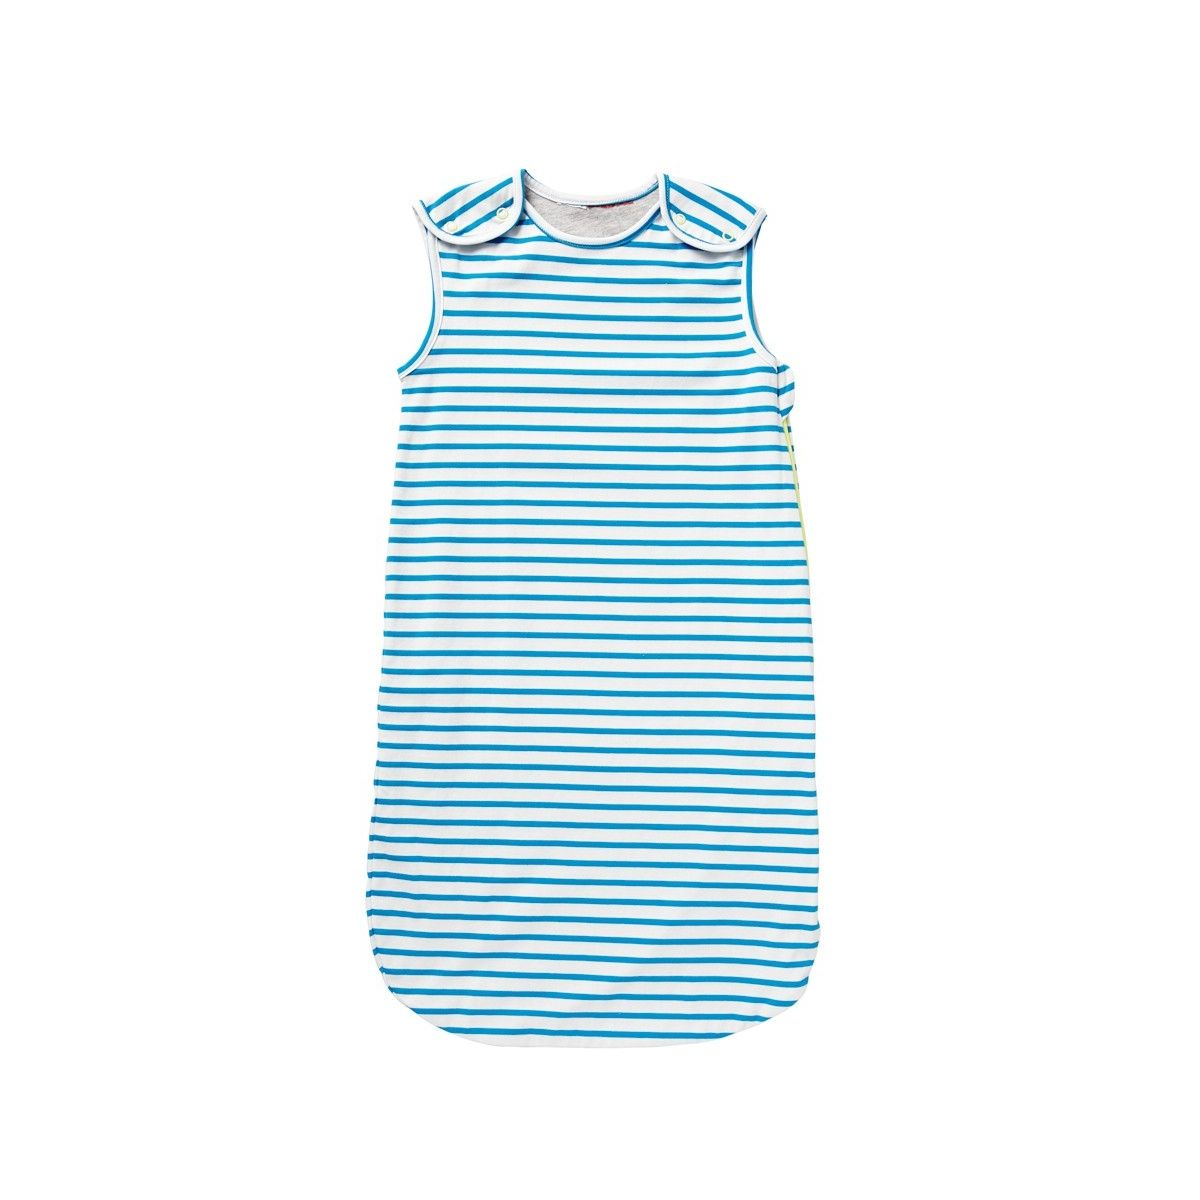 Bonds Lil Dreamer Summer Snugglesuit - Blue Marine and White Stripe | Bonds Baby Sleeping Bags Sale Outlet Australia